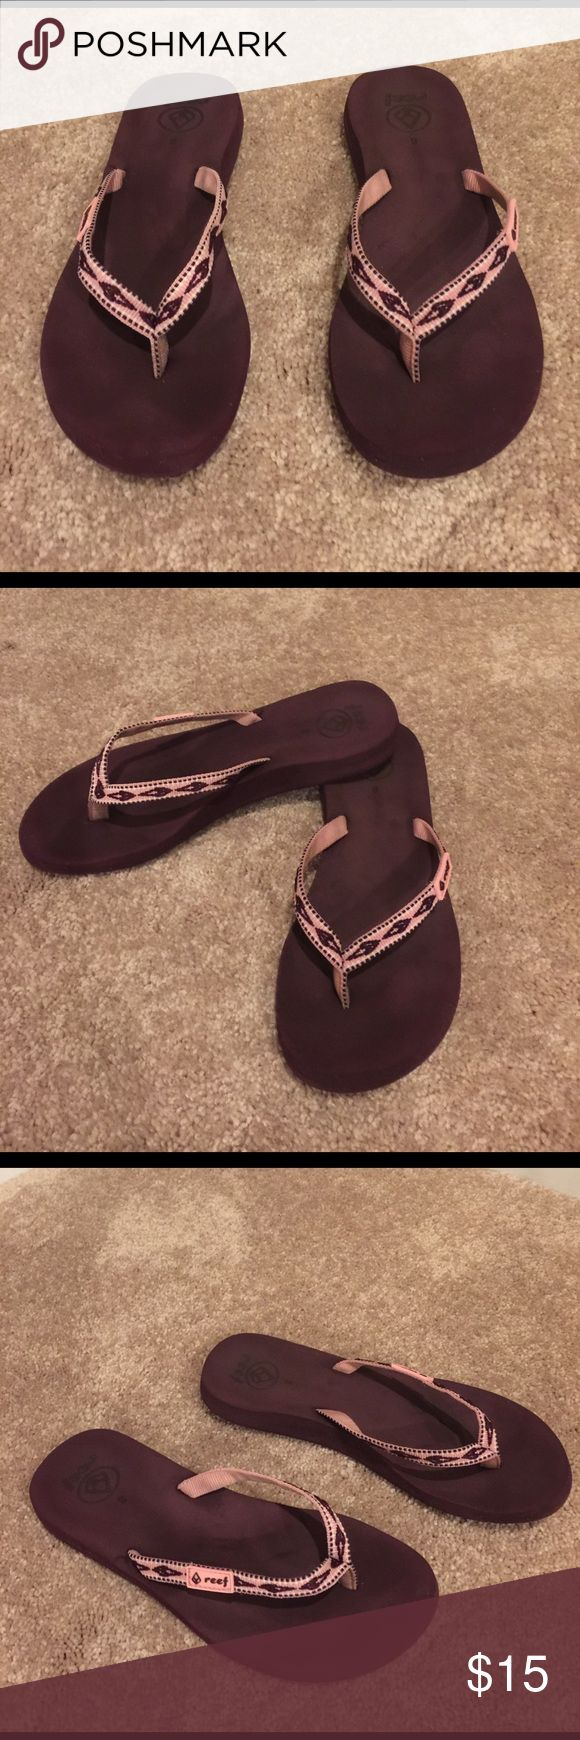 🌺🦋 REEF 🦋🌺PERFECT Pink & Purple Flip Flop SZ 8 🌺🦋 REEF 🦋🌺PERFECT Pink & Purple Flip Flop SZ 8 super soft and comfy with arch support.  Reef's are made well and provide the support so that you can comfortably walk in them for hours.  There awesome flip flops Preloved in great condition. Small mark on top right which you will not when your feet are in them. Reef Shoes Sandals